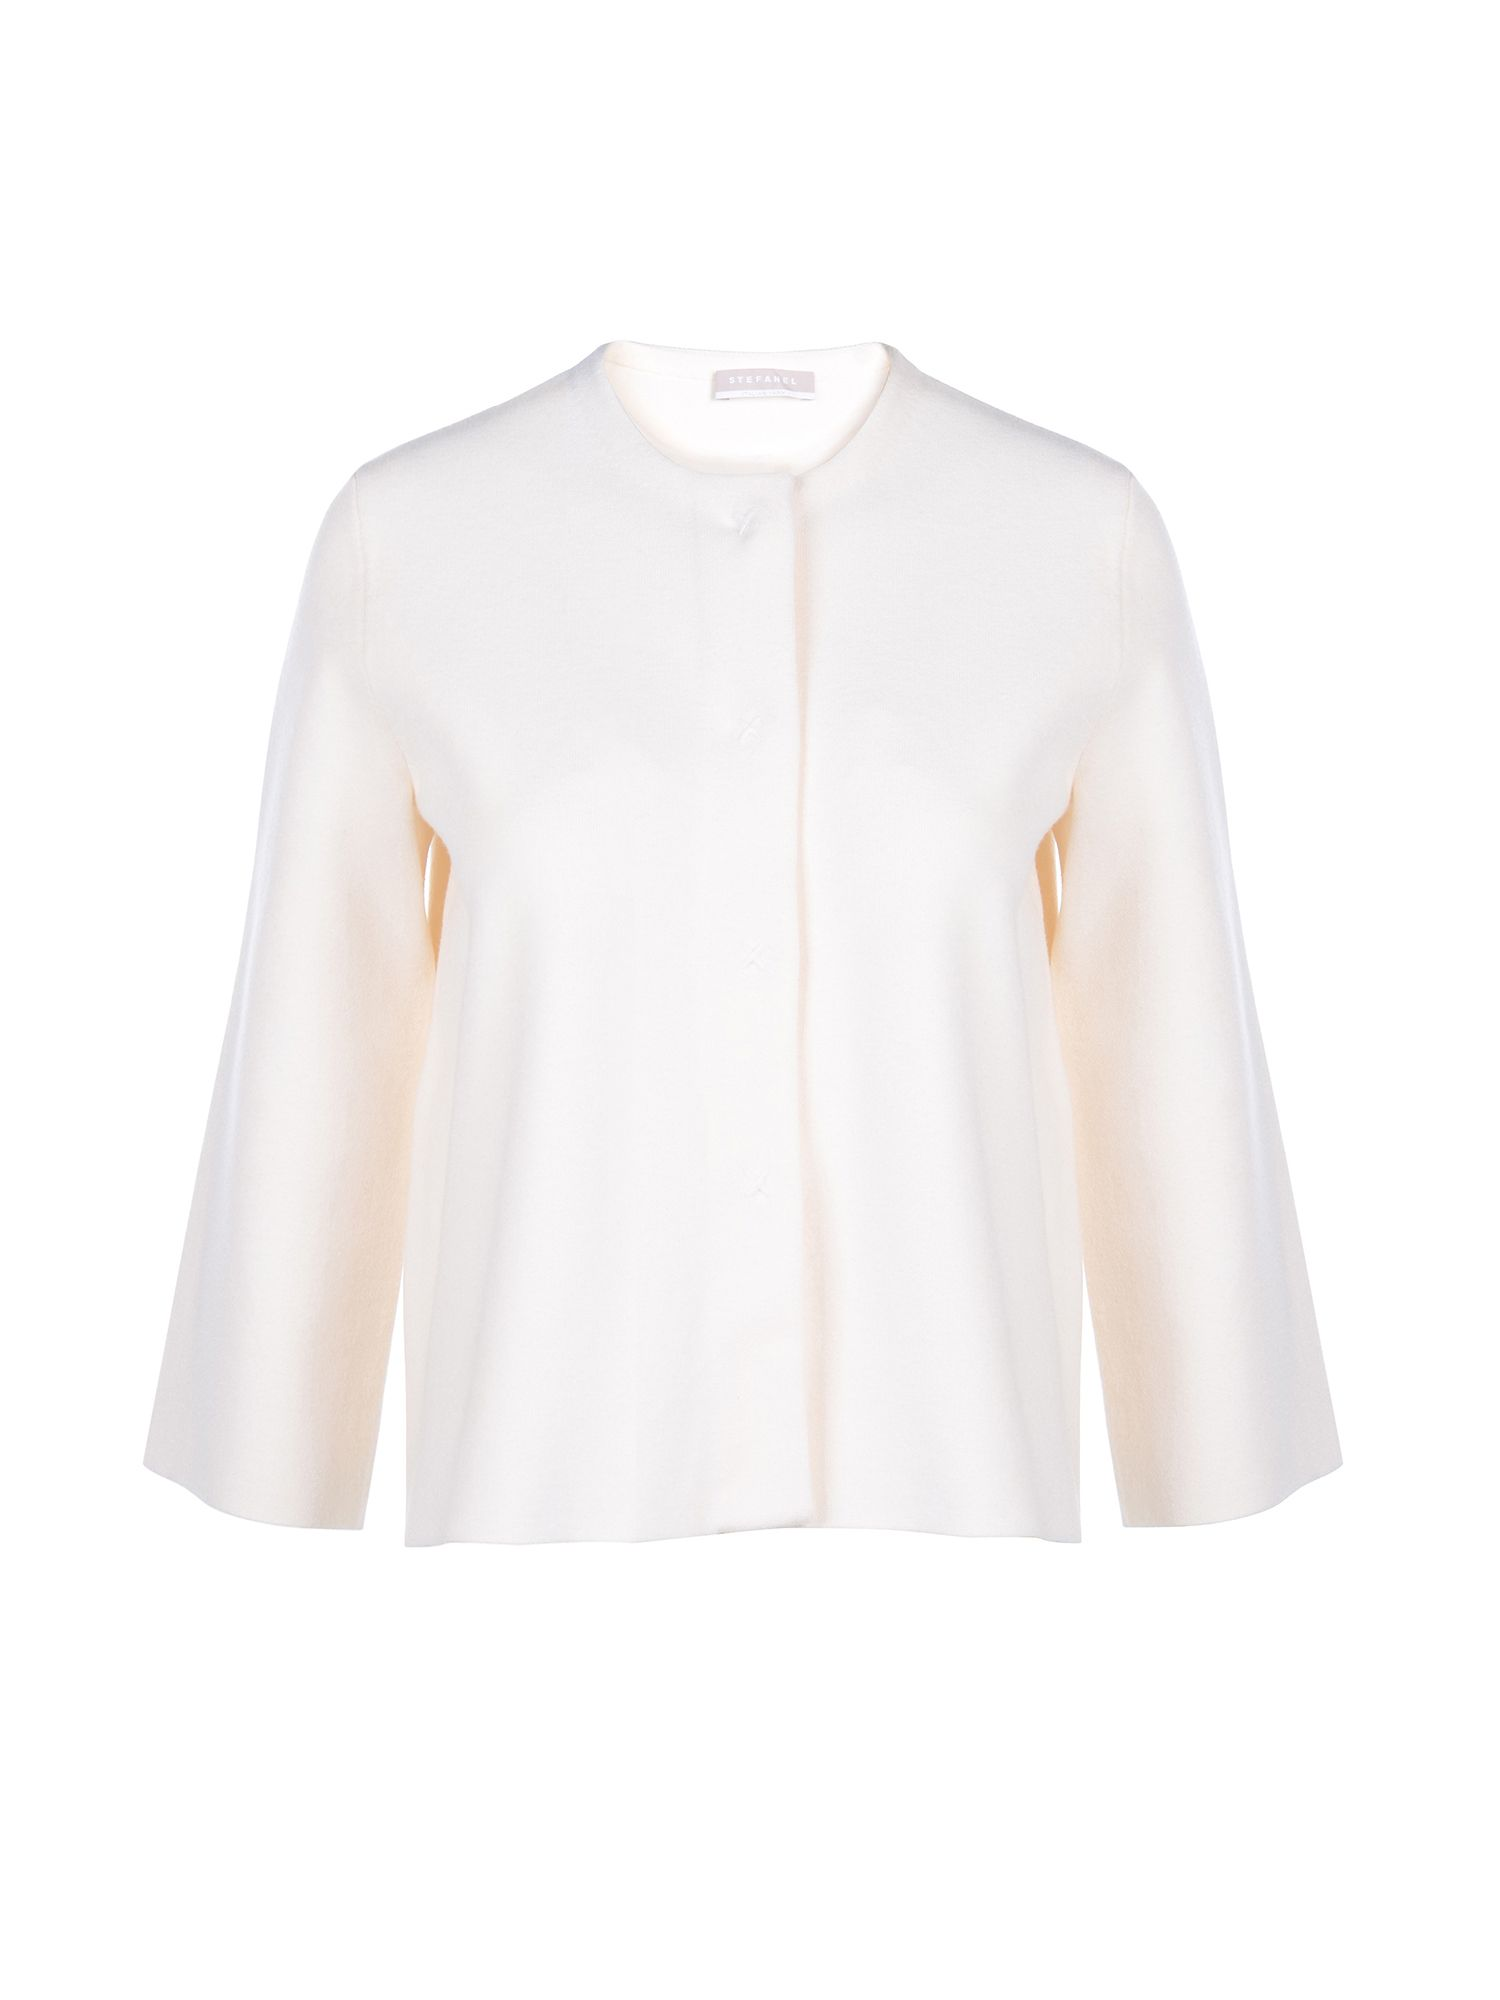 Stefanel Mandarin Jacket, Cream